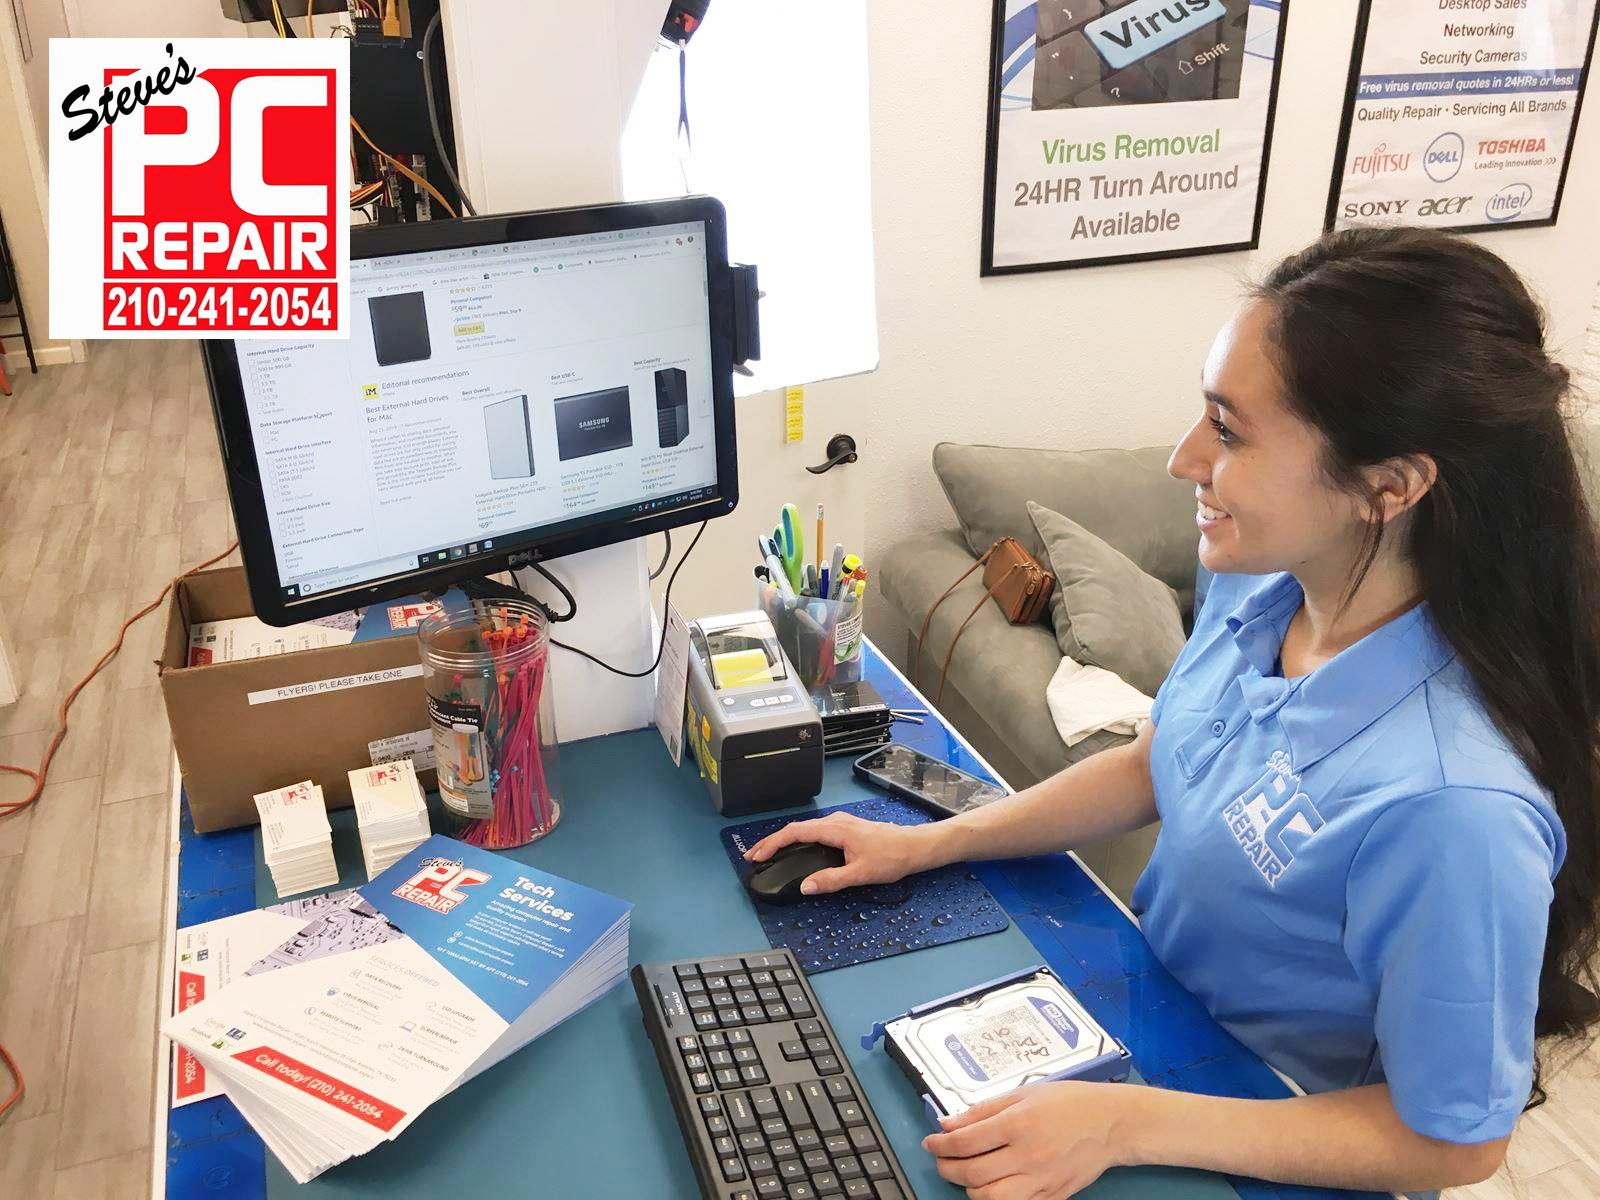 1st And Best Choice For Computer Repair In San Antonio